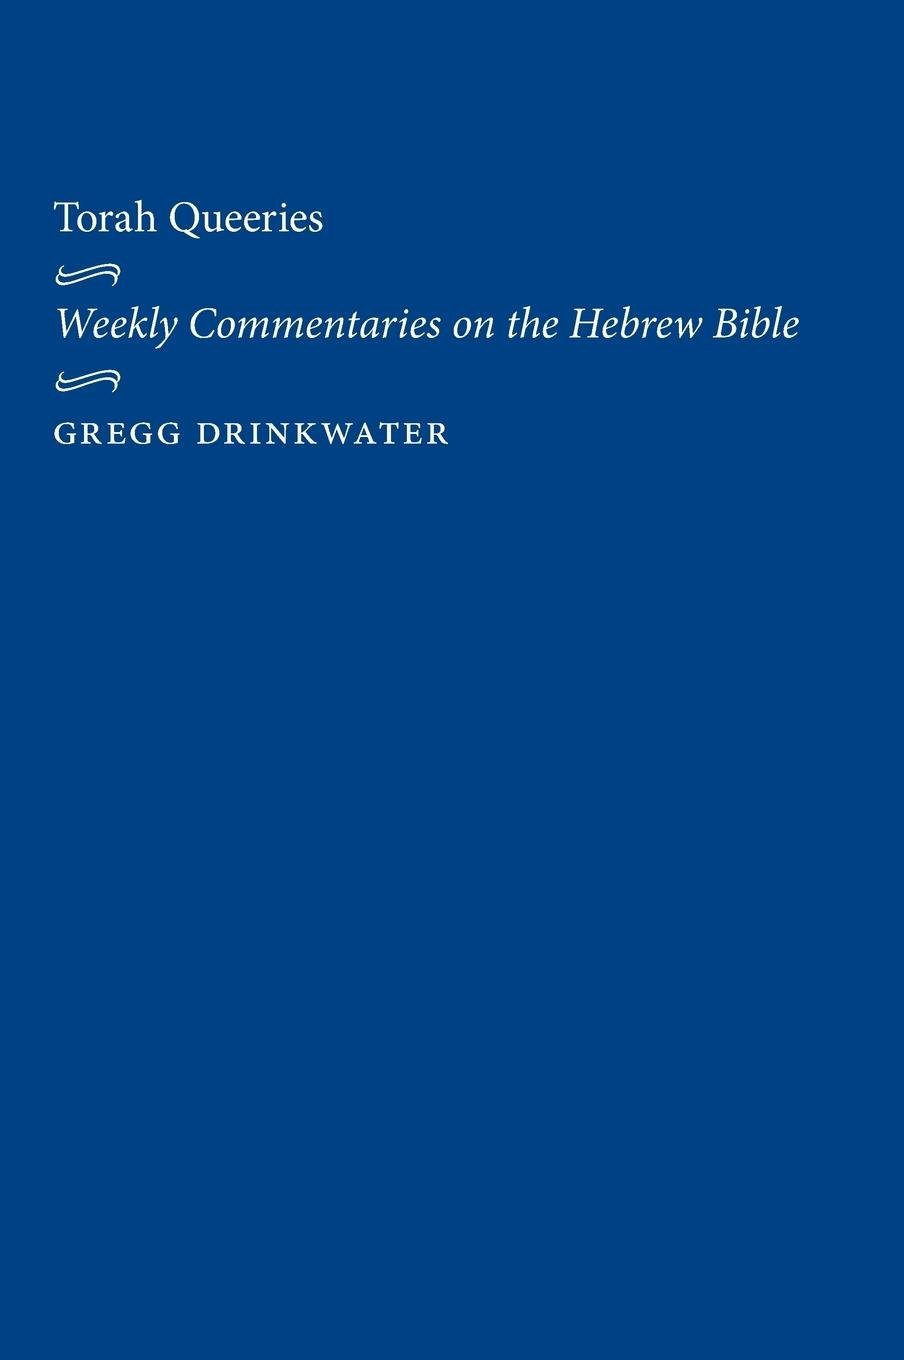 Download Torah Queeries: Weekly Commentaries on the Hebrew Bible pdf